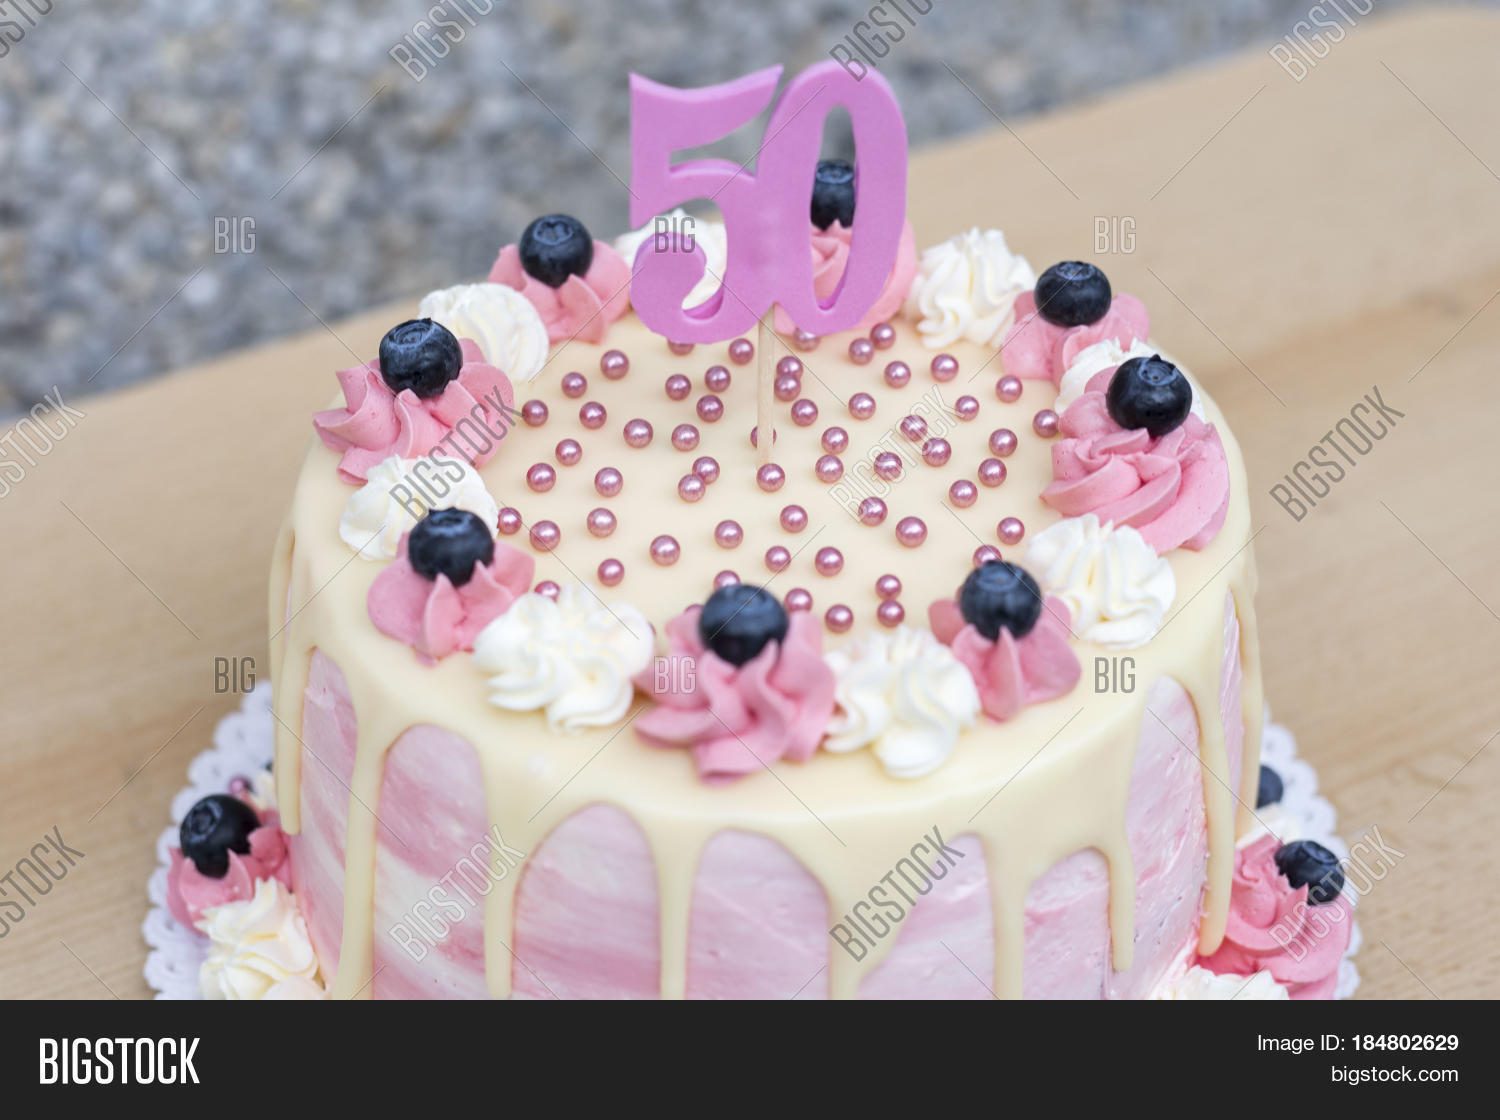 Outstanding Homemade Birthday Cake Image Photo Free Trial Bigstock Personalised Birthday Cards Veneteletsinfo